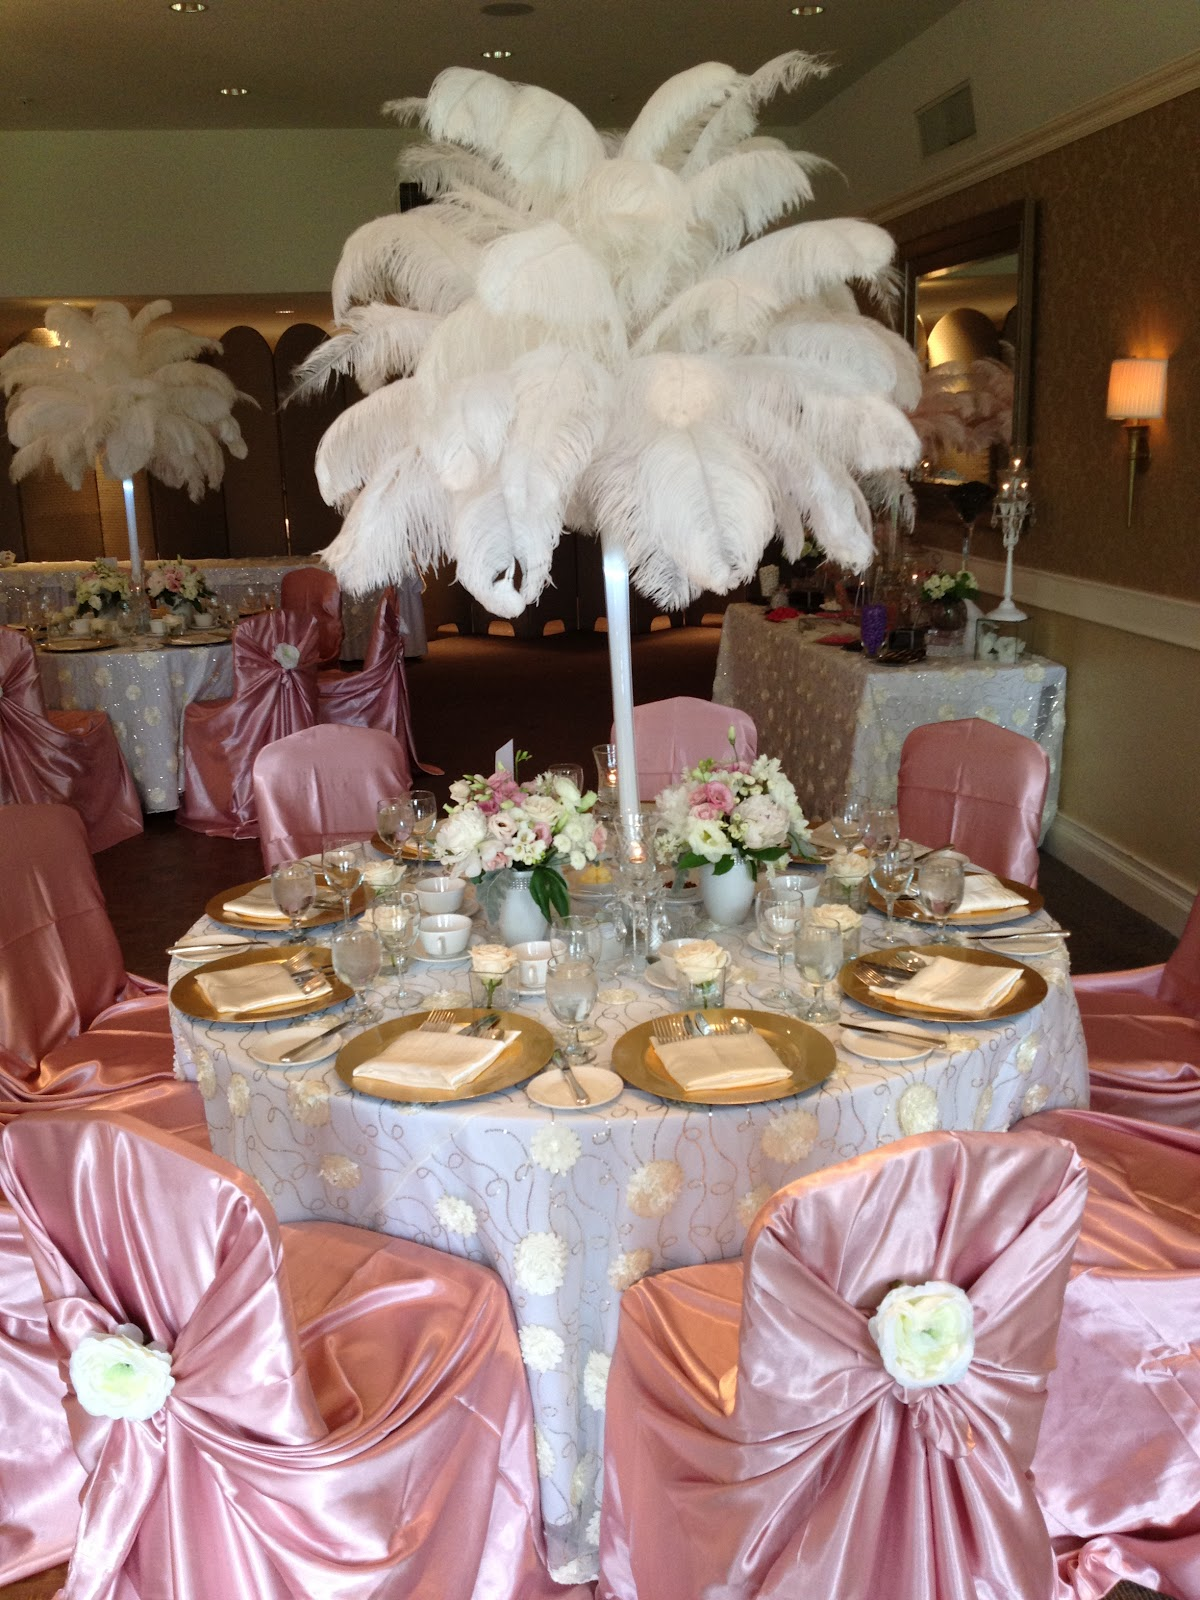 Flower and event decor ostrich feather centerpieces pink